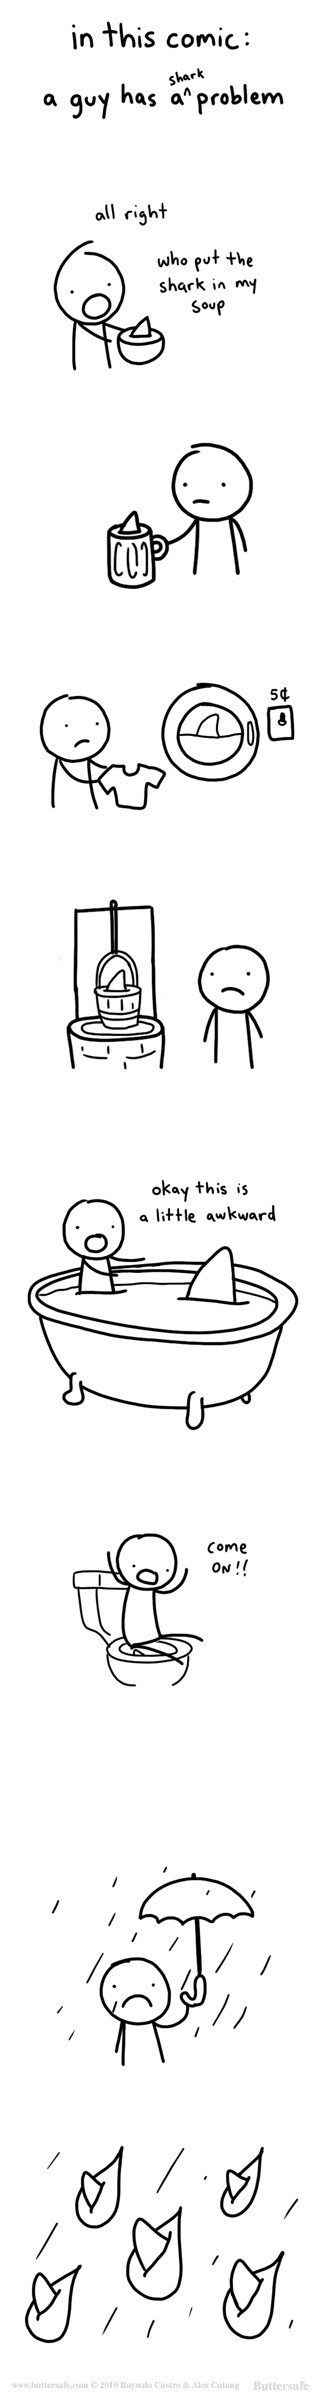 problems,sharks,web comics